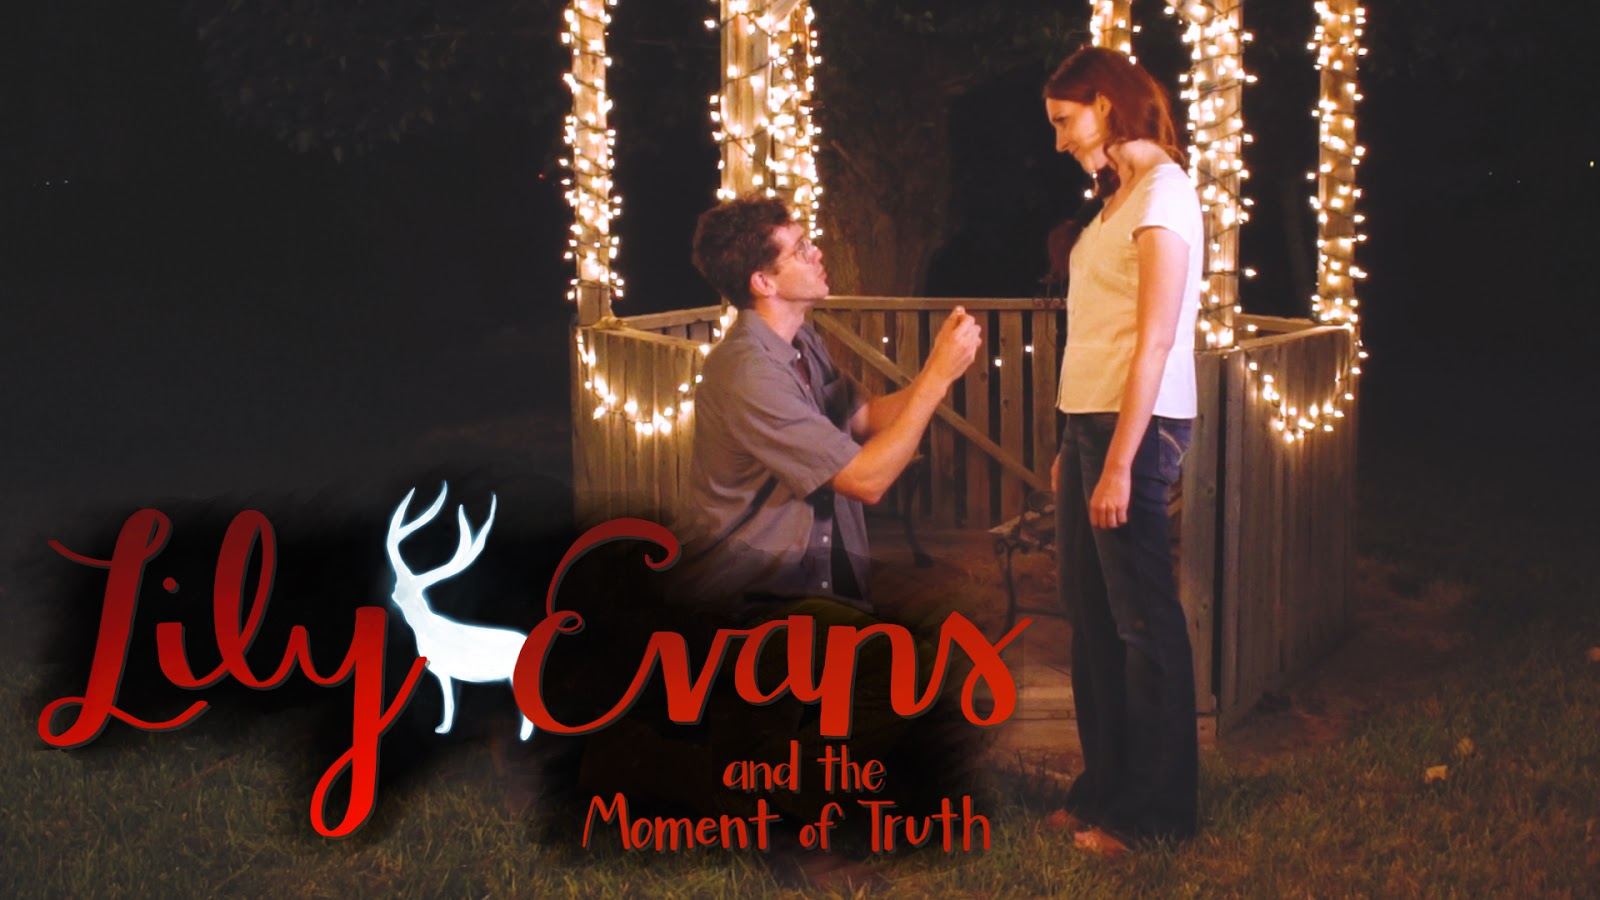 Lily Evans and the Moment of Truth